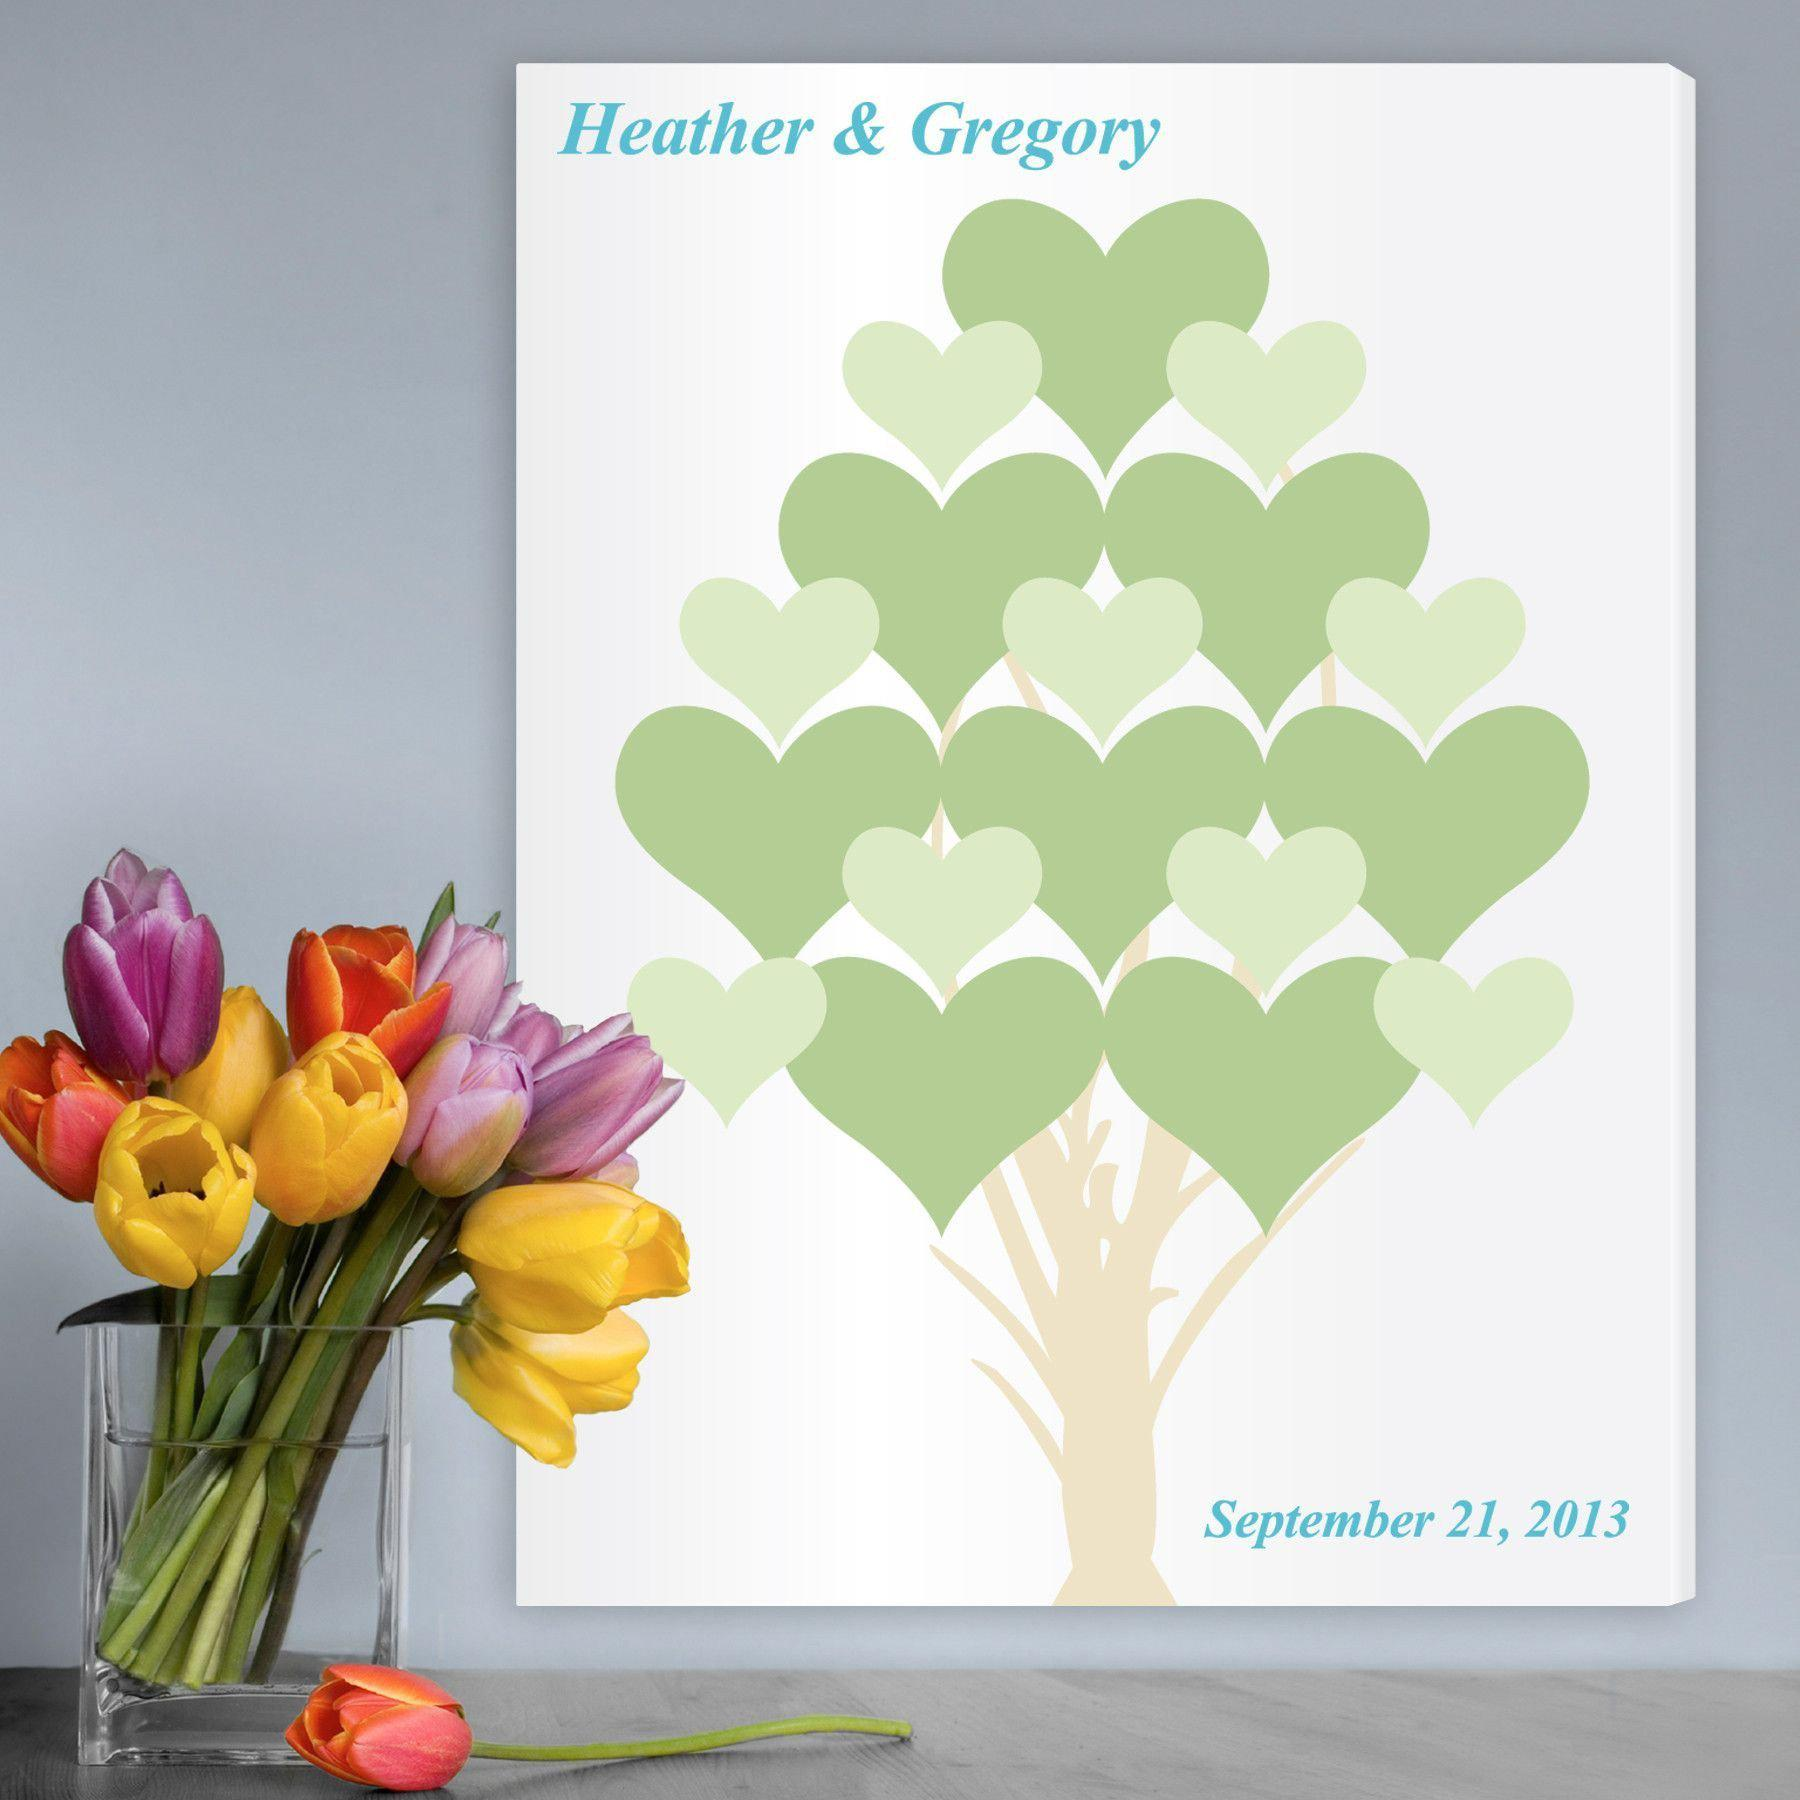 Personalized-Guestbook-Canvas-Flourishing-Hearts